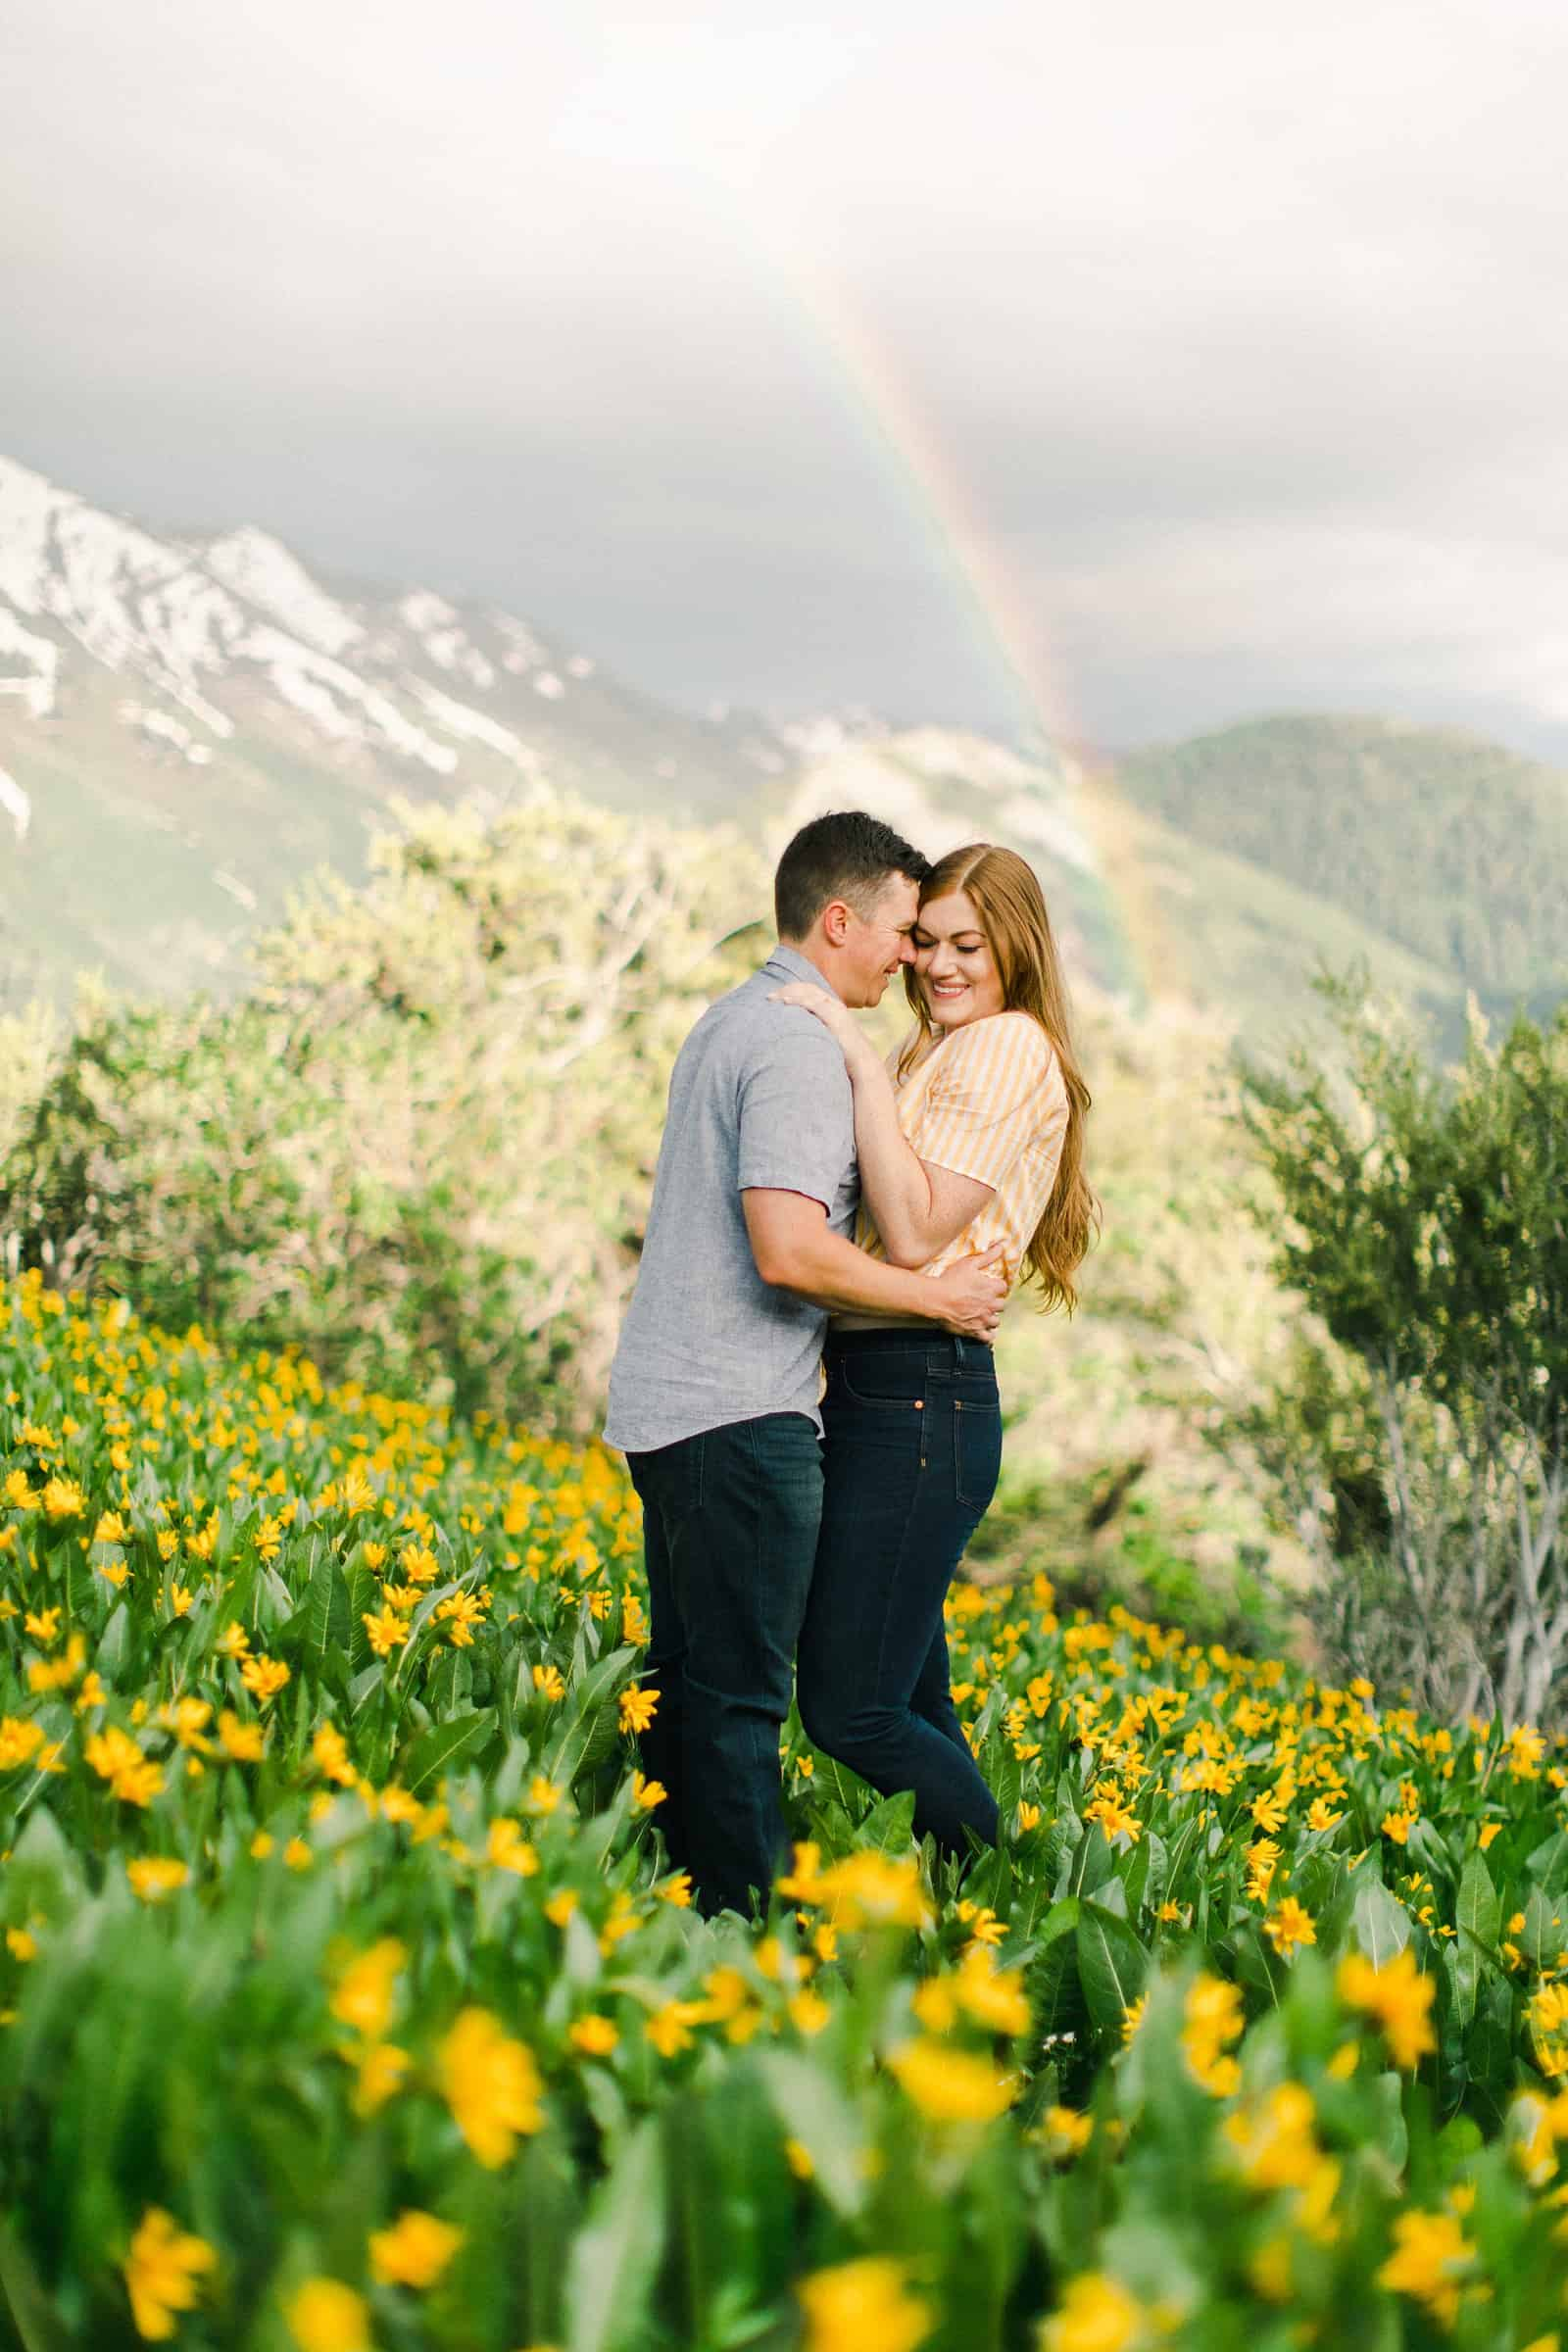 Provo Canyon wildflowers field engagement session, Utah wedding photography, engaged couple in yellow flowers and mountains with rainbow in background